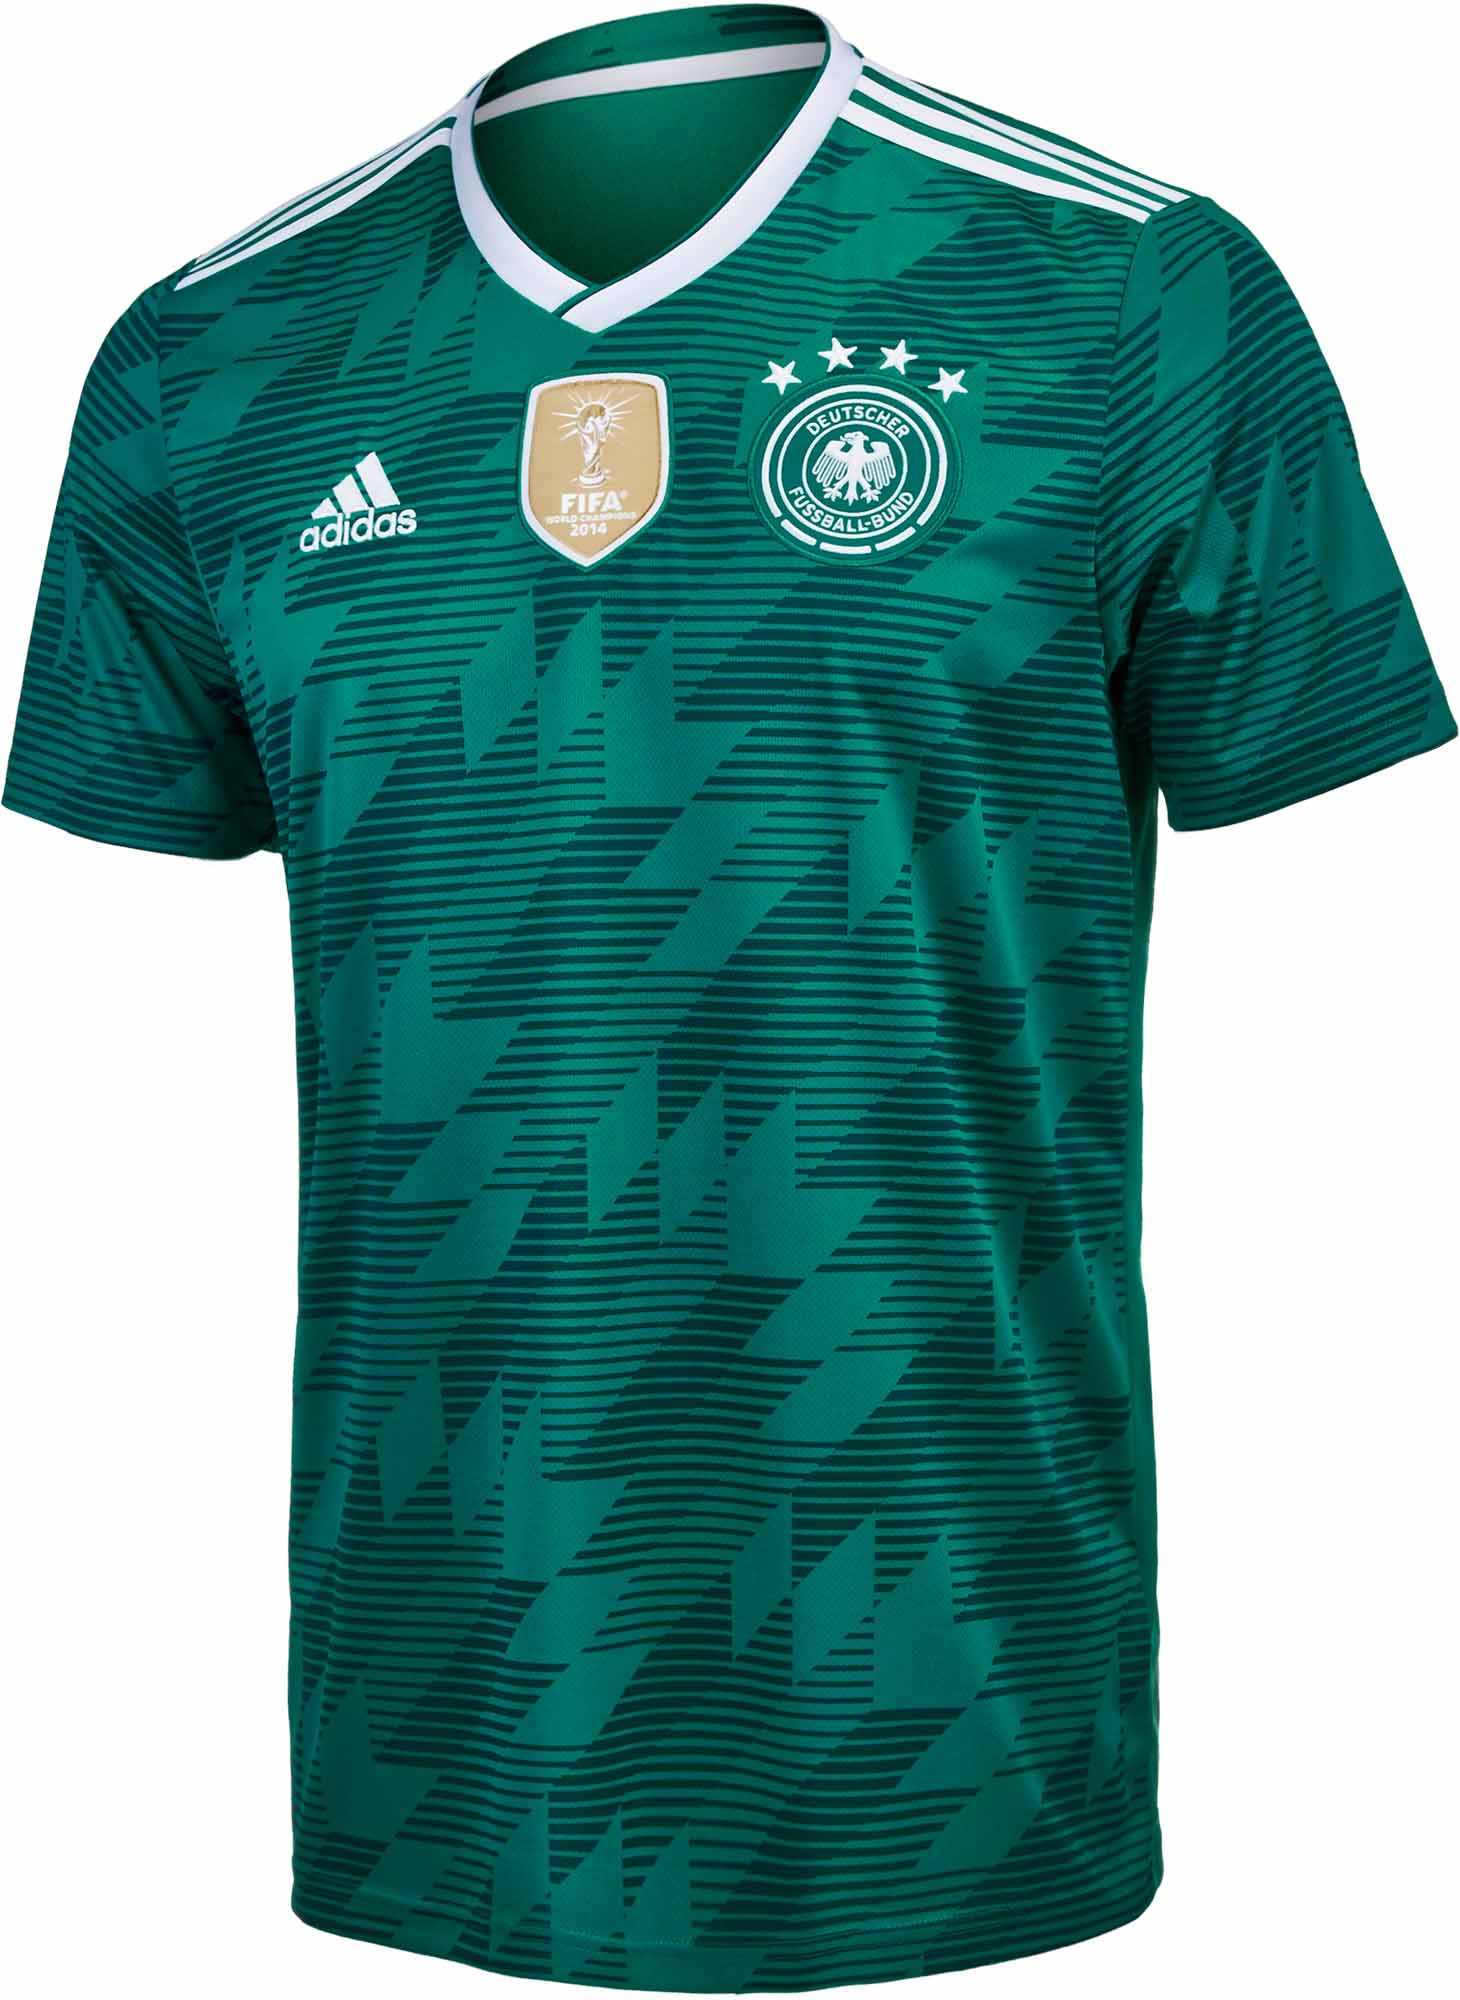 adidas Germany Away Jersey 2018-19 - SoccerPro.com - photo#17